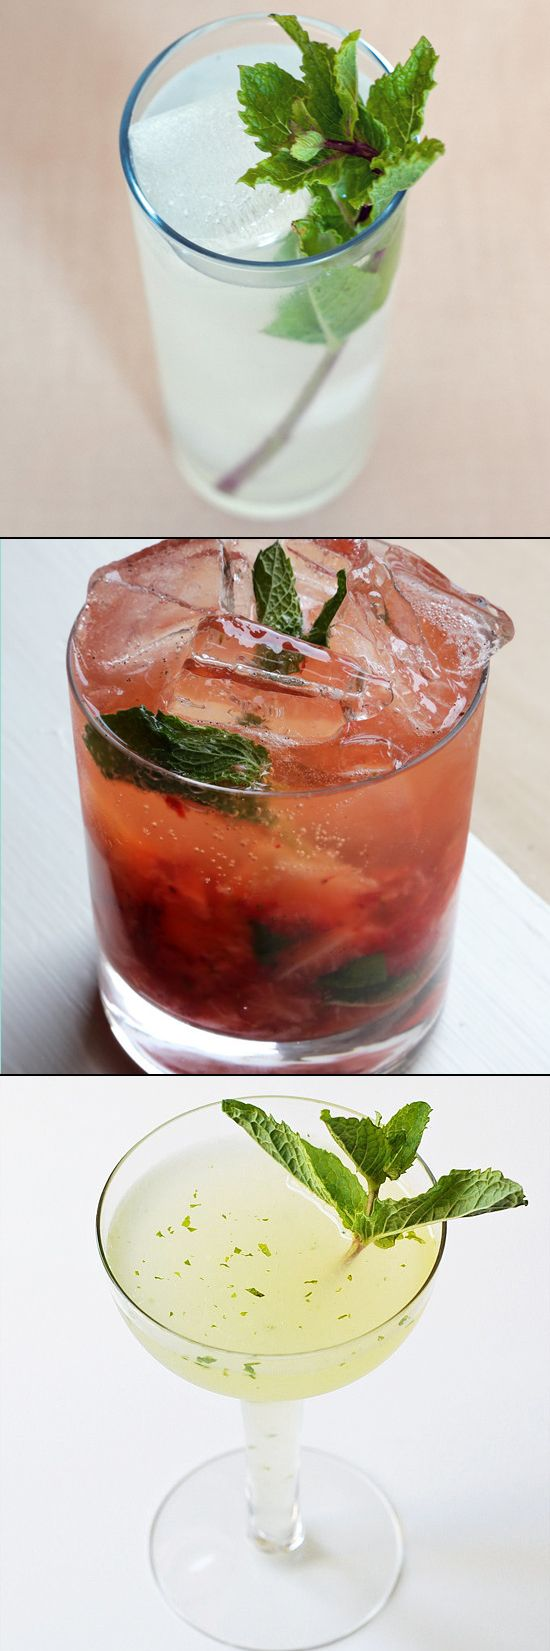 When thinking of the Kentucky Derby, mint juleps are probably on your radar. But if bourbon isn't your thing or you're just looking for something different, boy have we got the liquor list for you. From a kiwi-tequila cobbler to twists on classic cocktails, here are 10 refreshing drinks with mint to get you in the racing (and sipping) spirit.